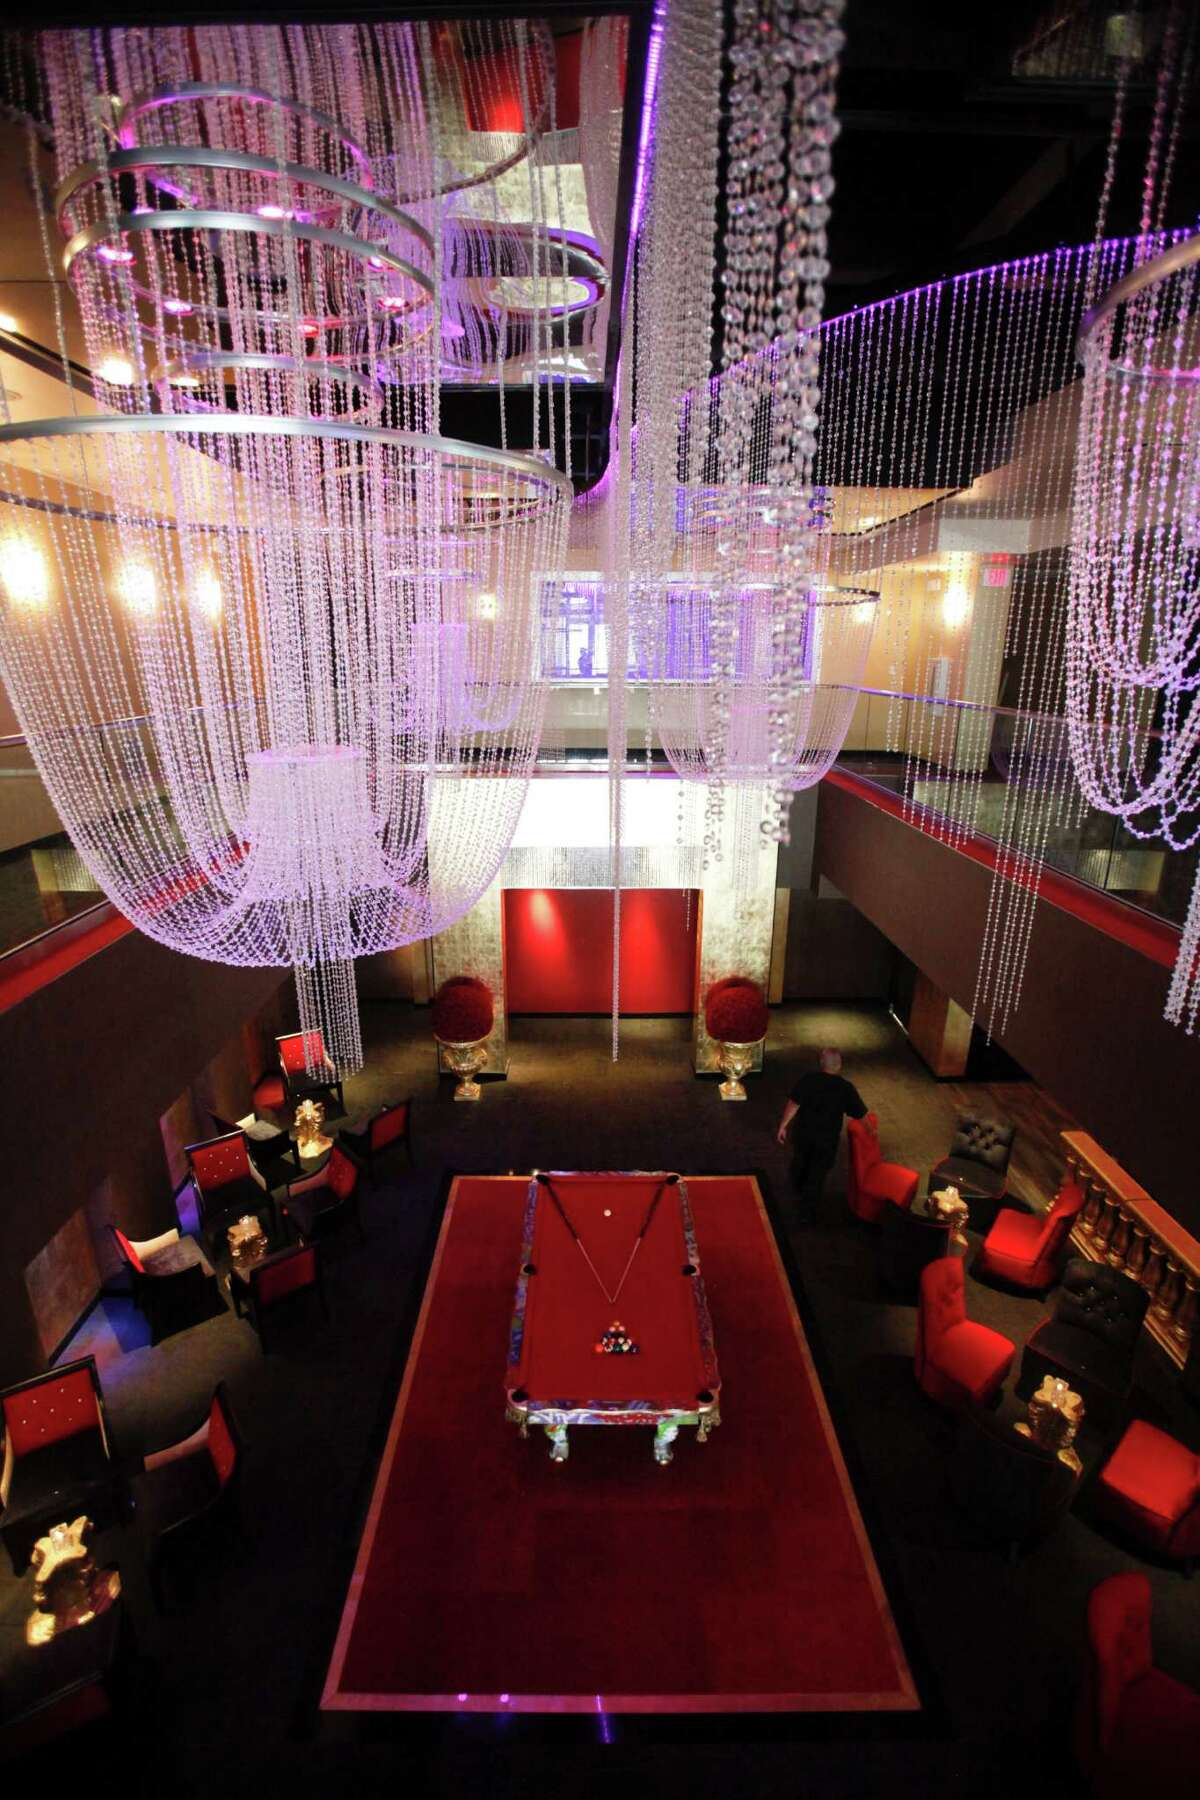 The new Midtown steakhouse and bar Mr. Peeples has a double-height room with large Swarovski crystal chandeliers.